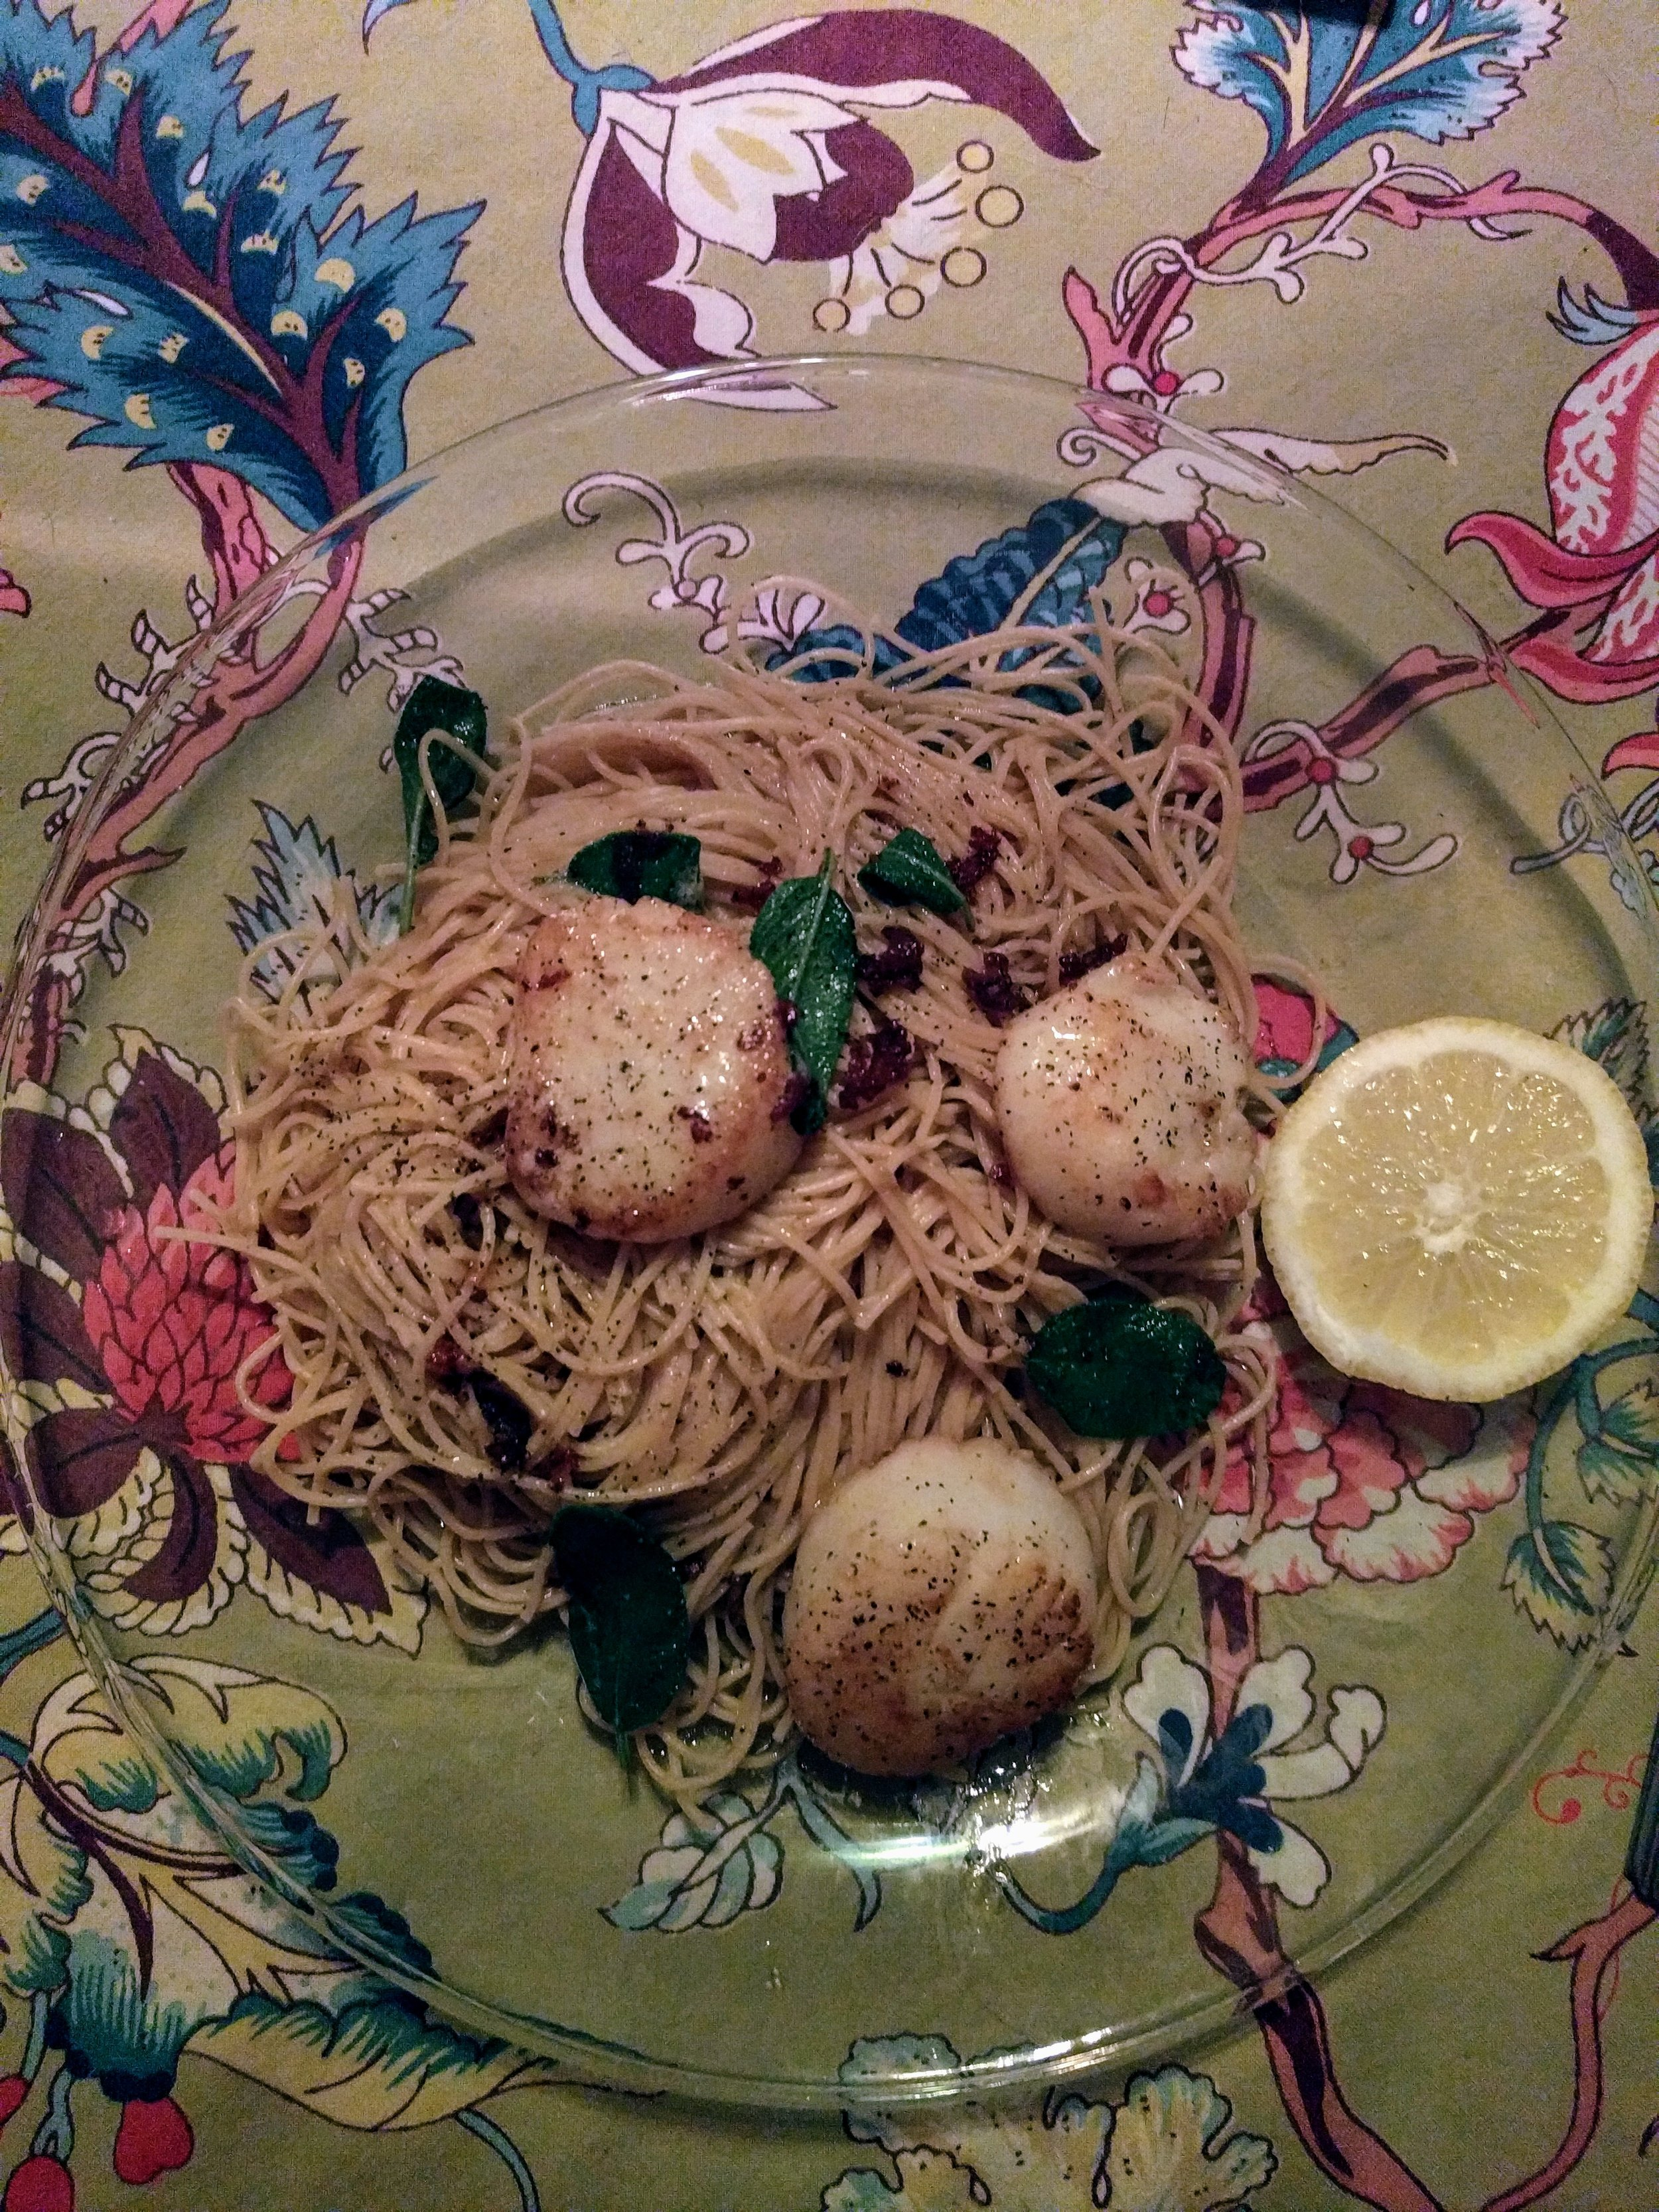 Seared sea scallops with fried sage and a brown butter sauce over angel hair pasta